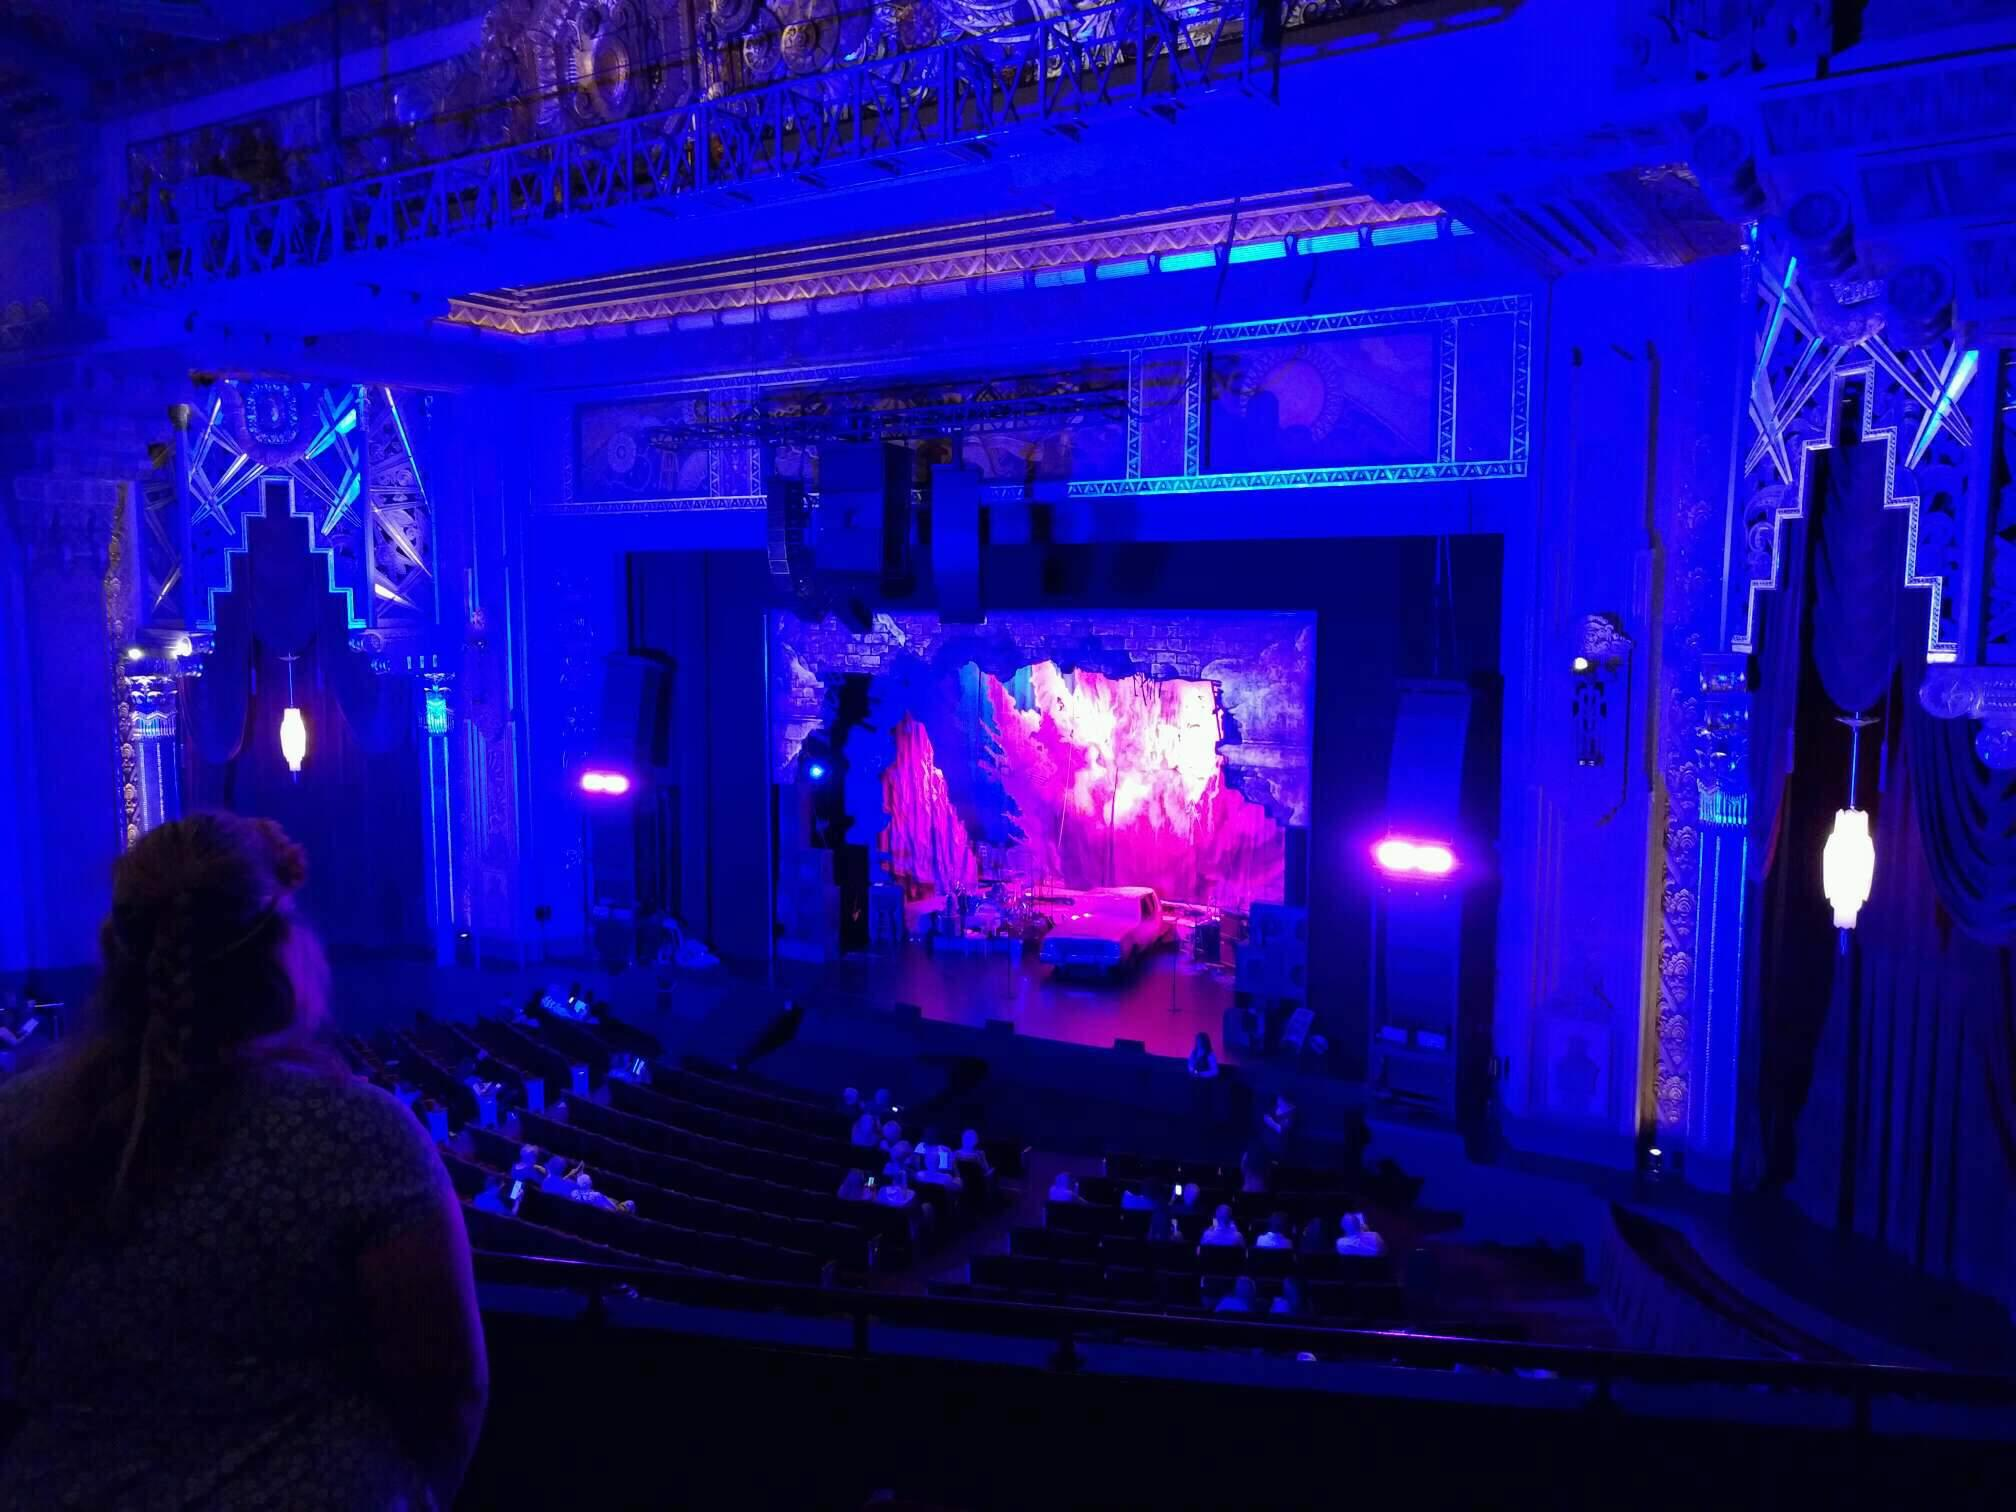 Hollywood Pantages Theatre Section Mezzanine R Row B Seat 10